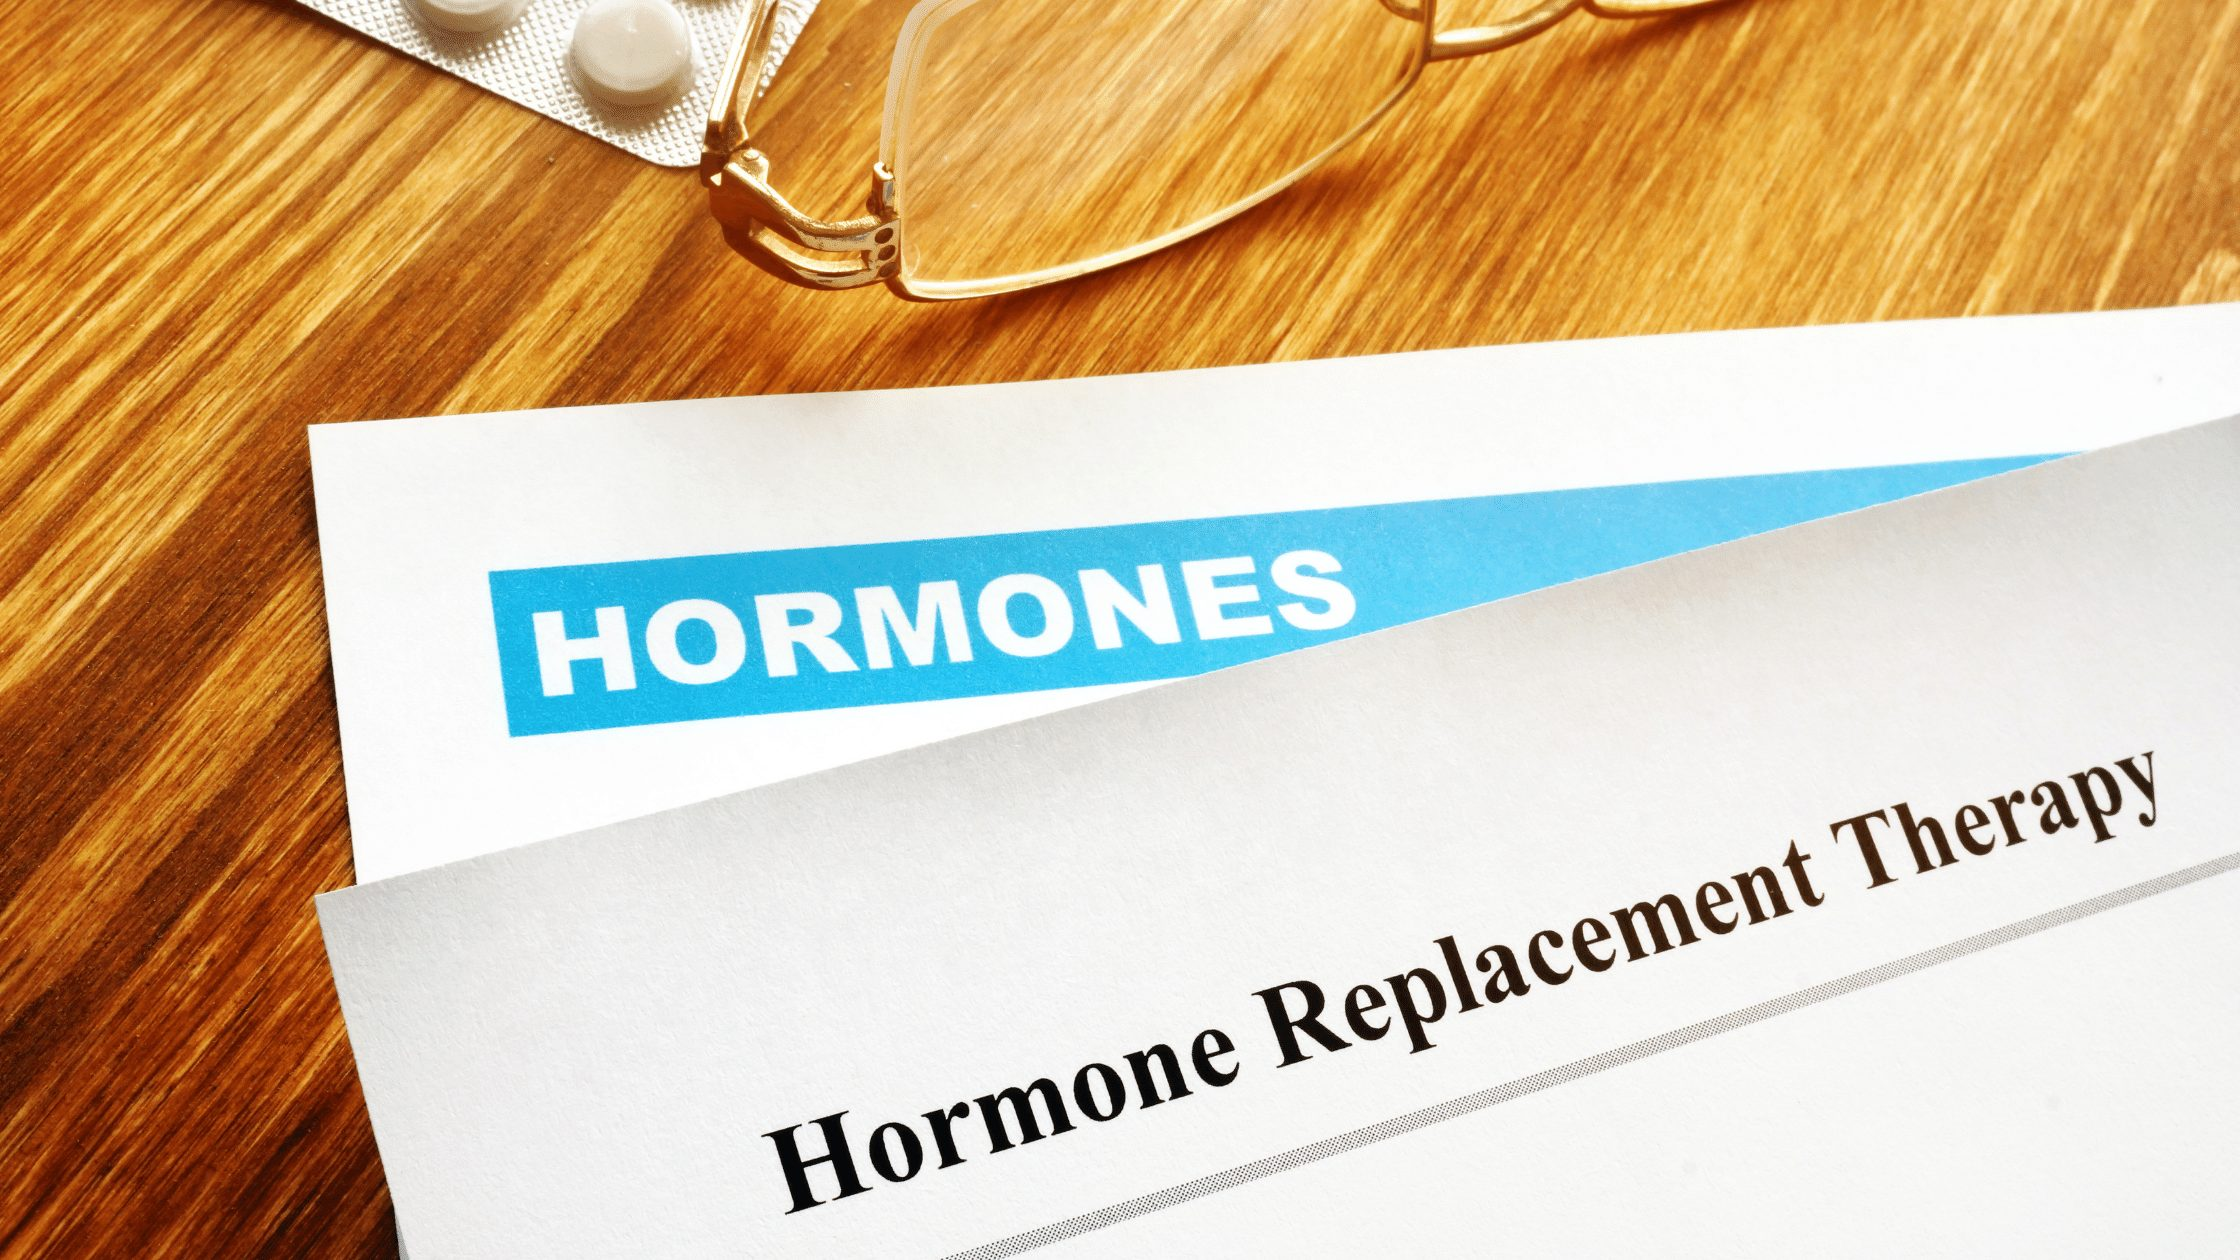 Hormone Replacement Therapy printed on a graphic